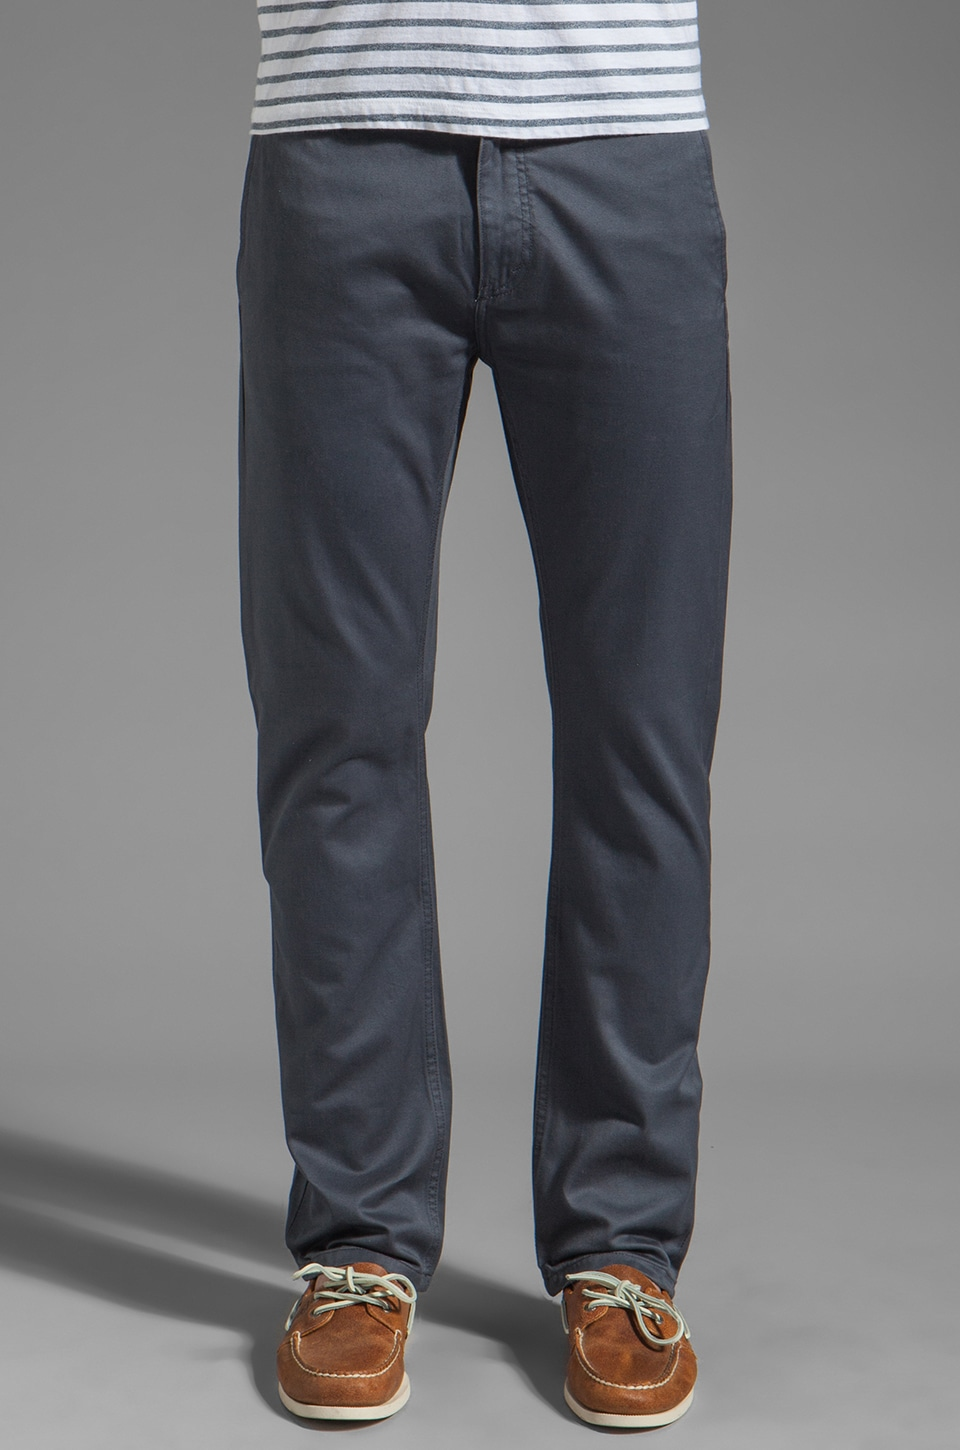 V.S.T.R Craftsman Selvedge Chino Pant in Ombre Blue